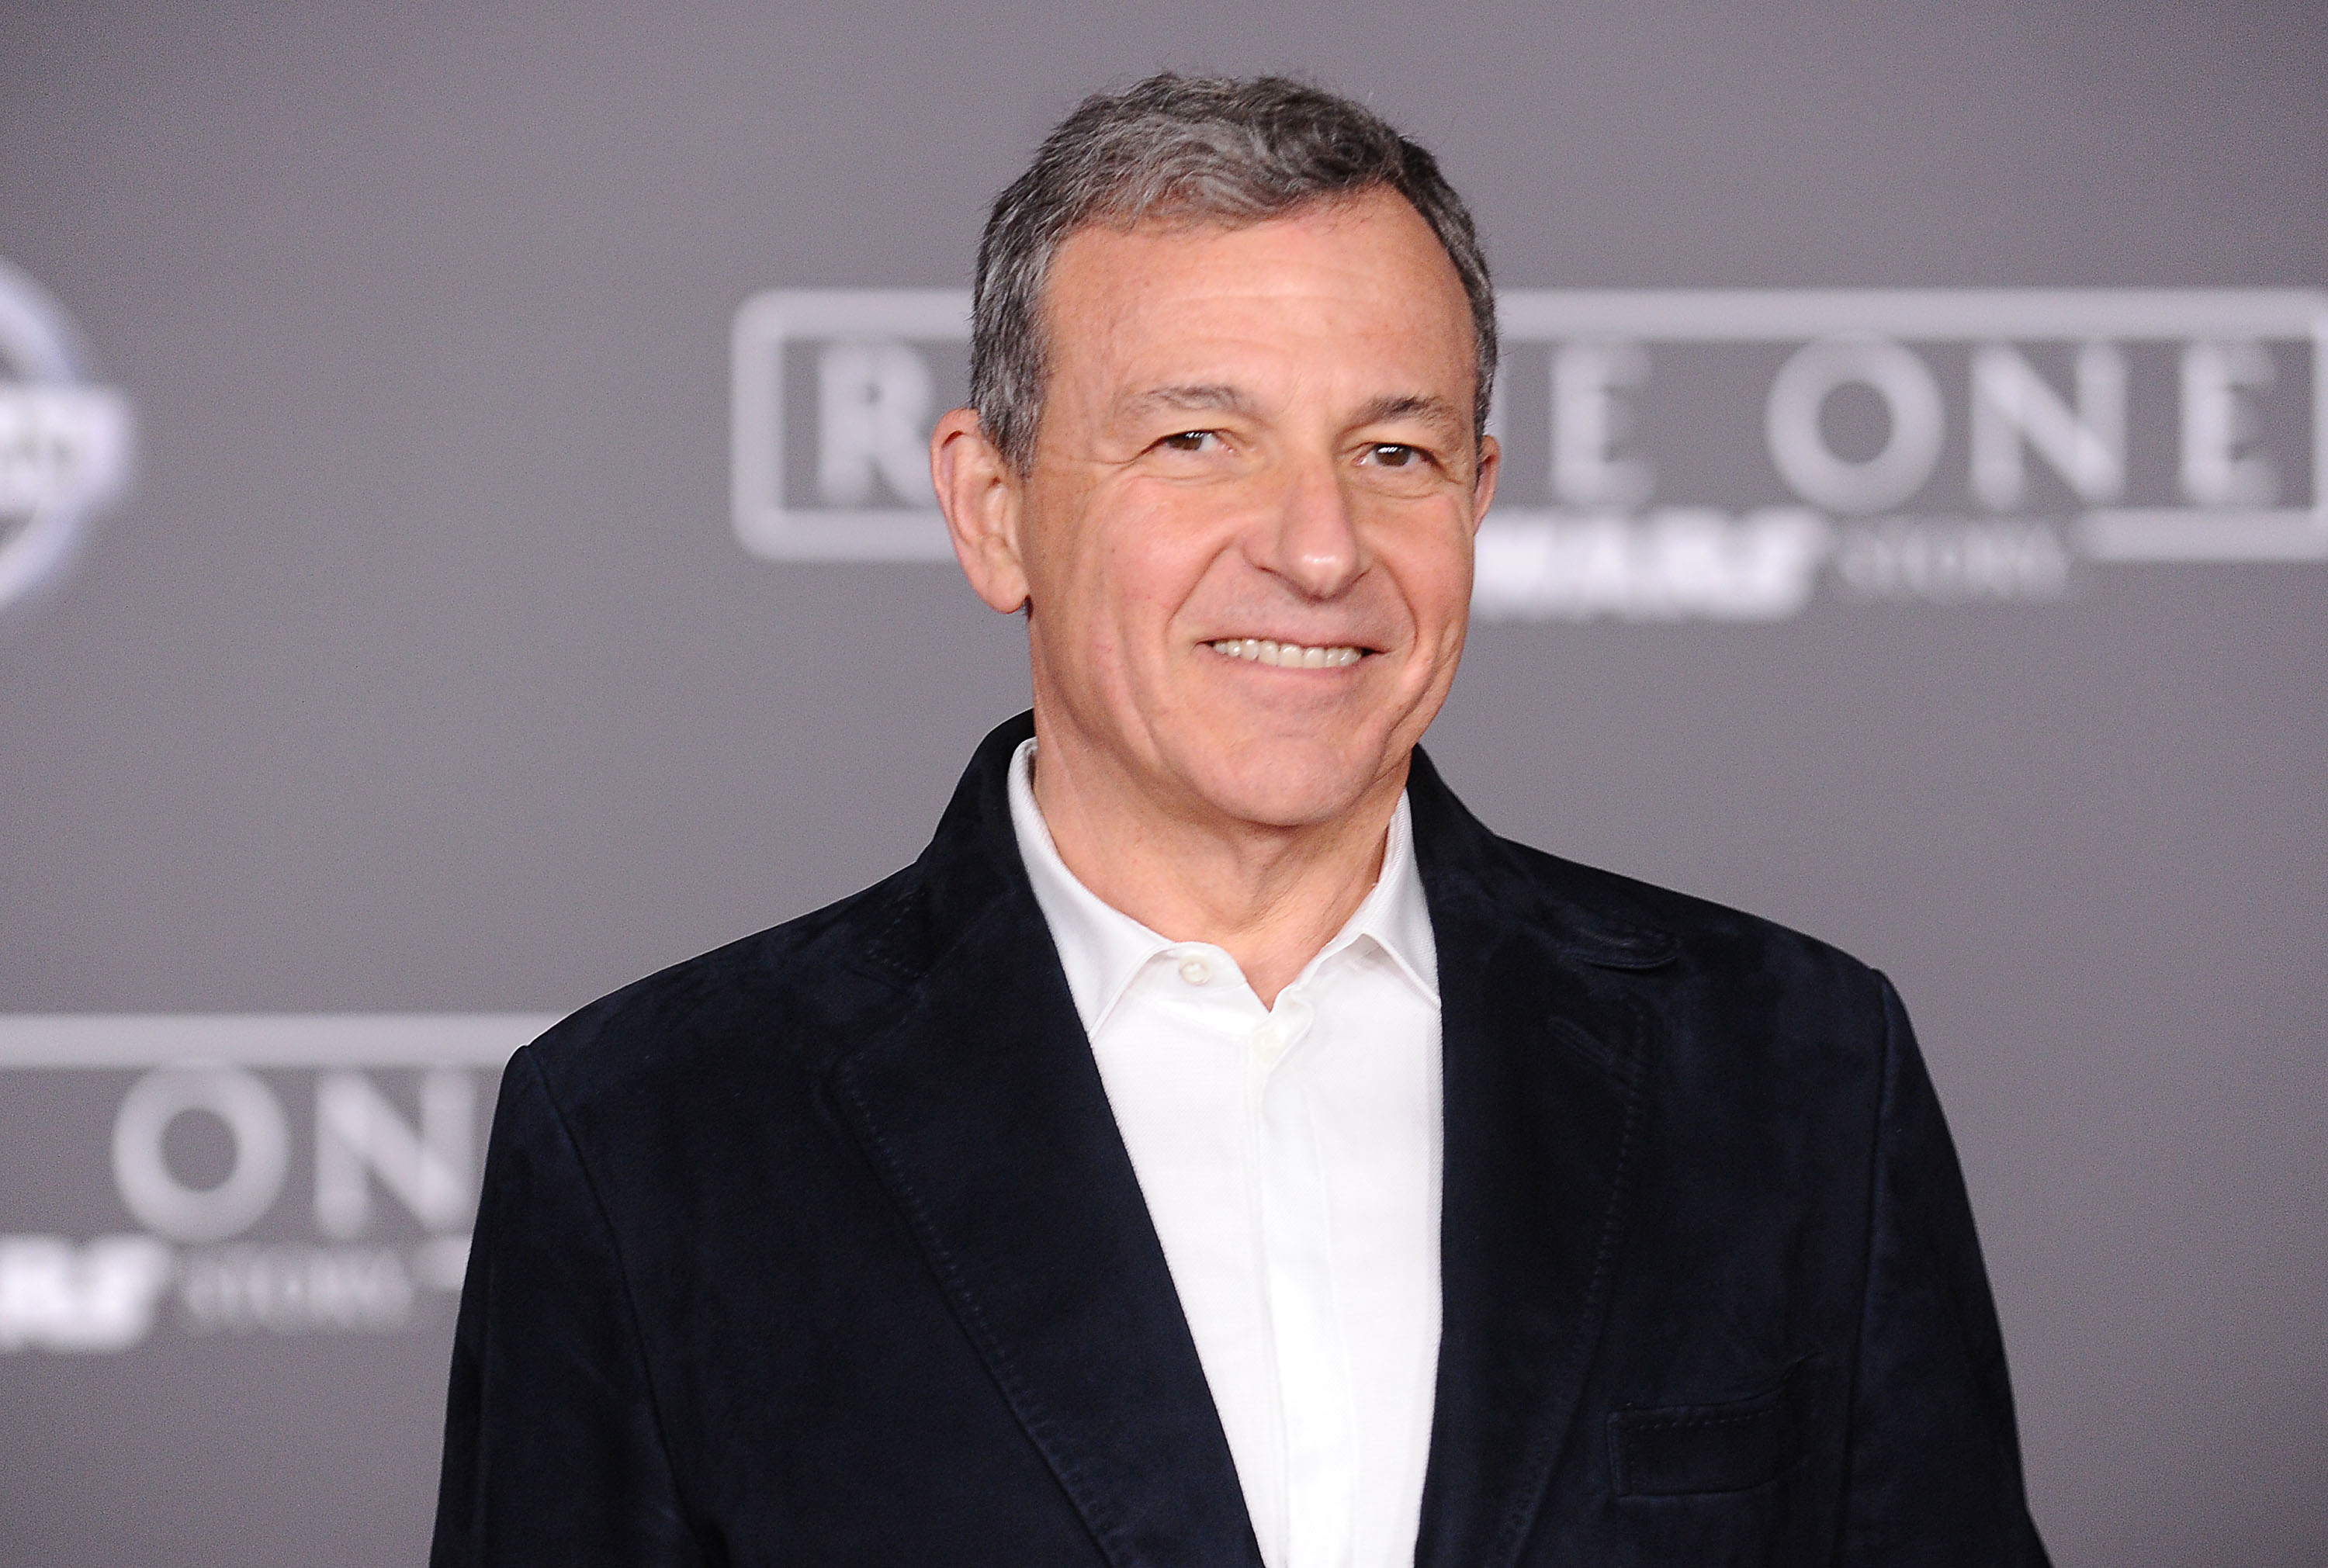 Bob Iger attends the premiere of  Rogue One: A Star Wars Story  at the Pantages Theatre on Dec. 10, 2016 in Hollywood, California.